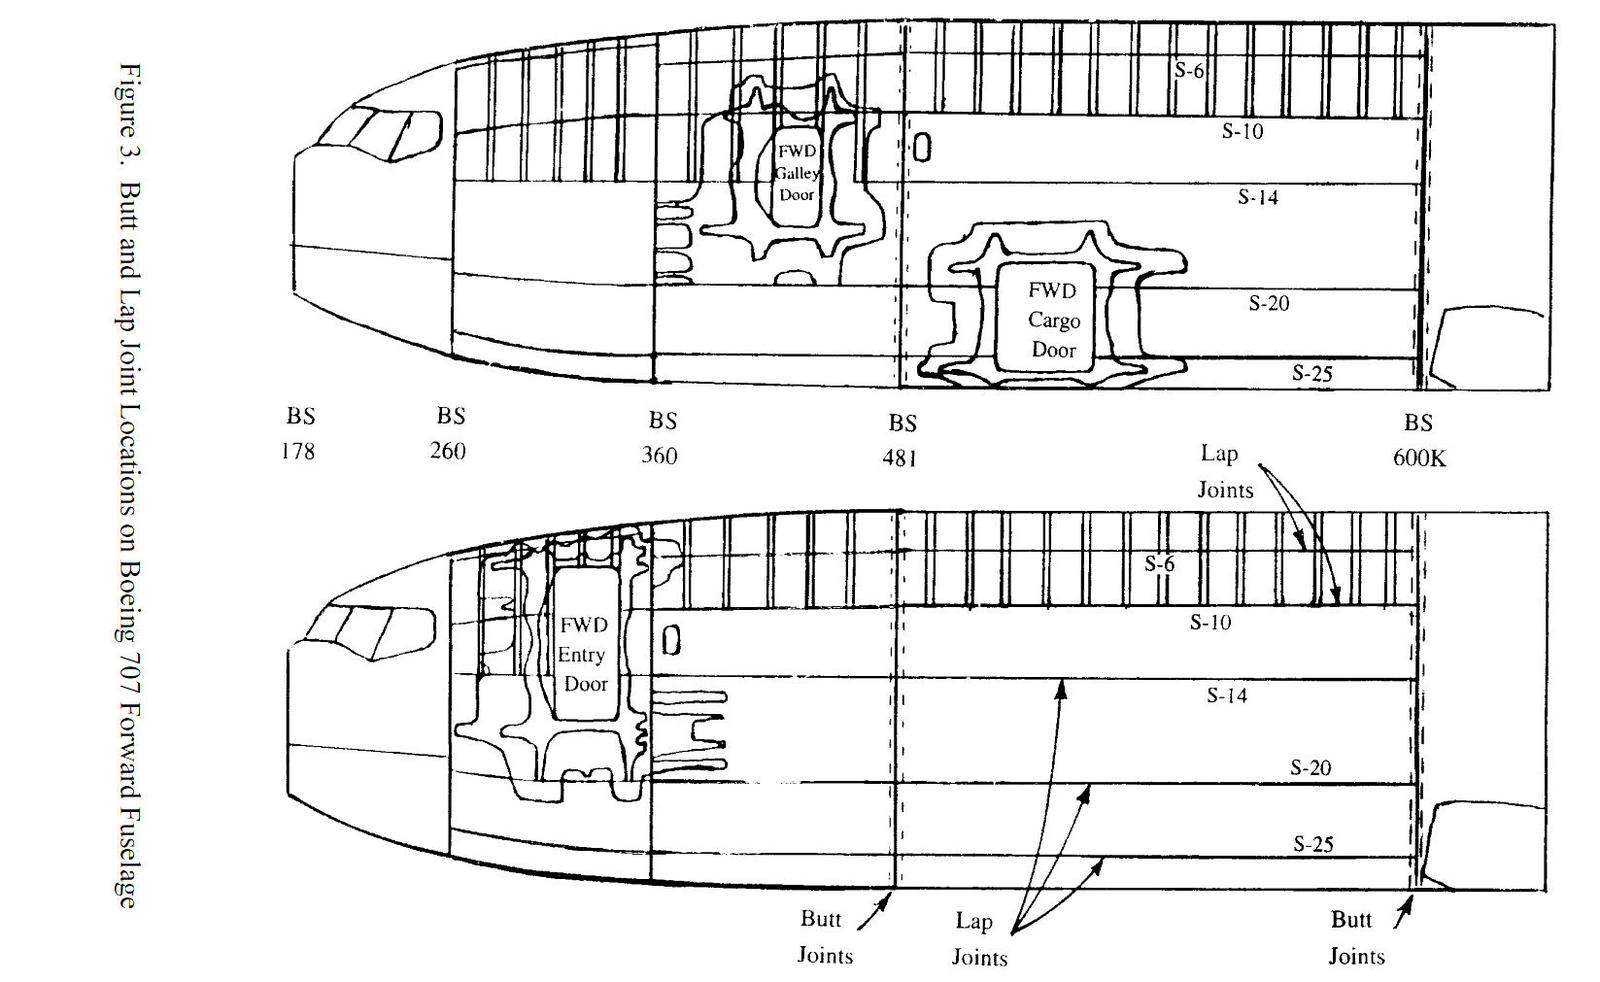 commercial aircraft diagrams